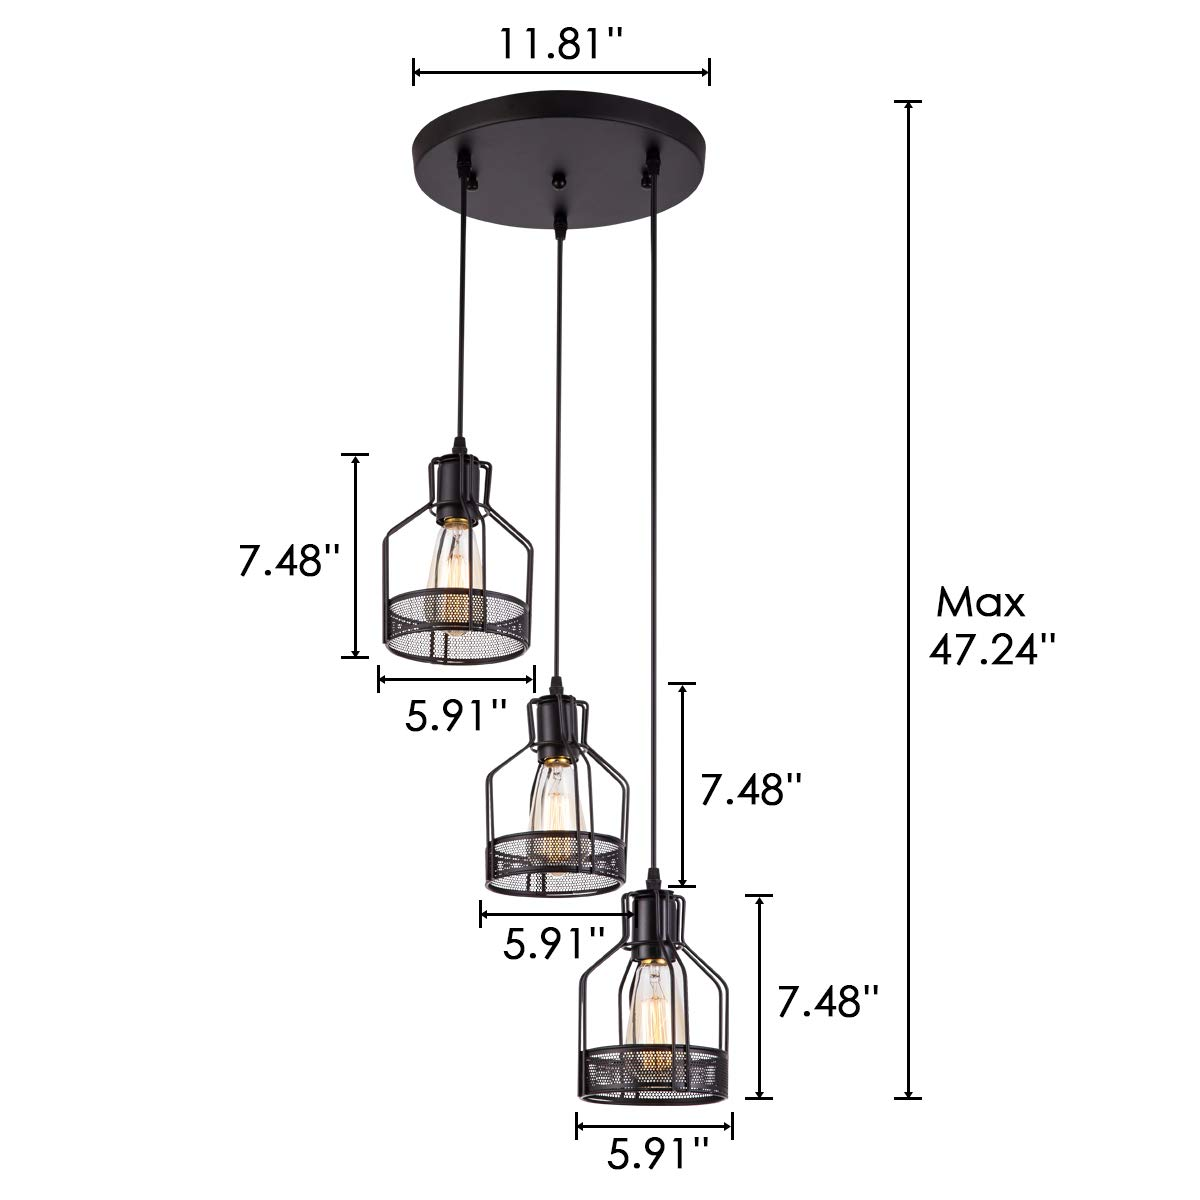 Pendant Light with Rustic Black Metal Cage Shade, Industrial Retro Matte Black Adjustable 3-Lights Hanging Lighting, Pendant lamp Fixtures for Home, Kitchen Island, Barn, Dining Room, Cafe, Farmhouse by ZYuan (Image #6)